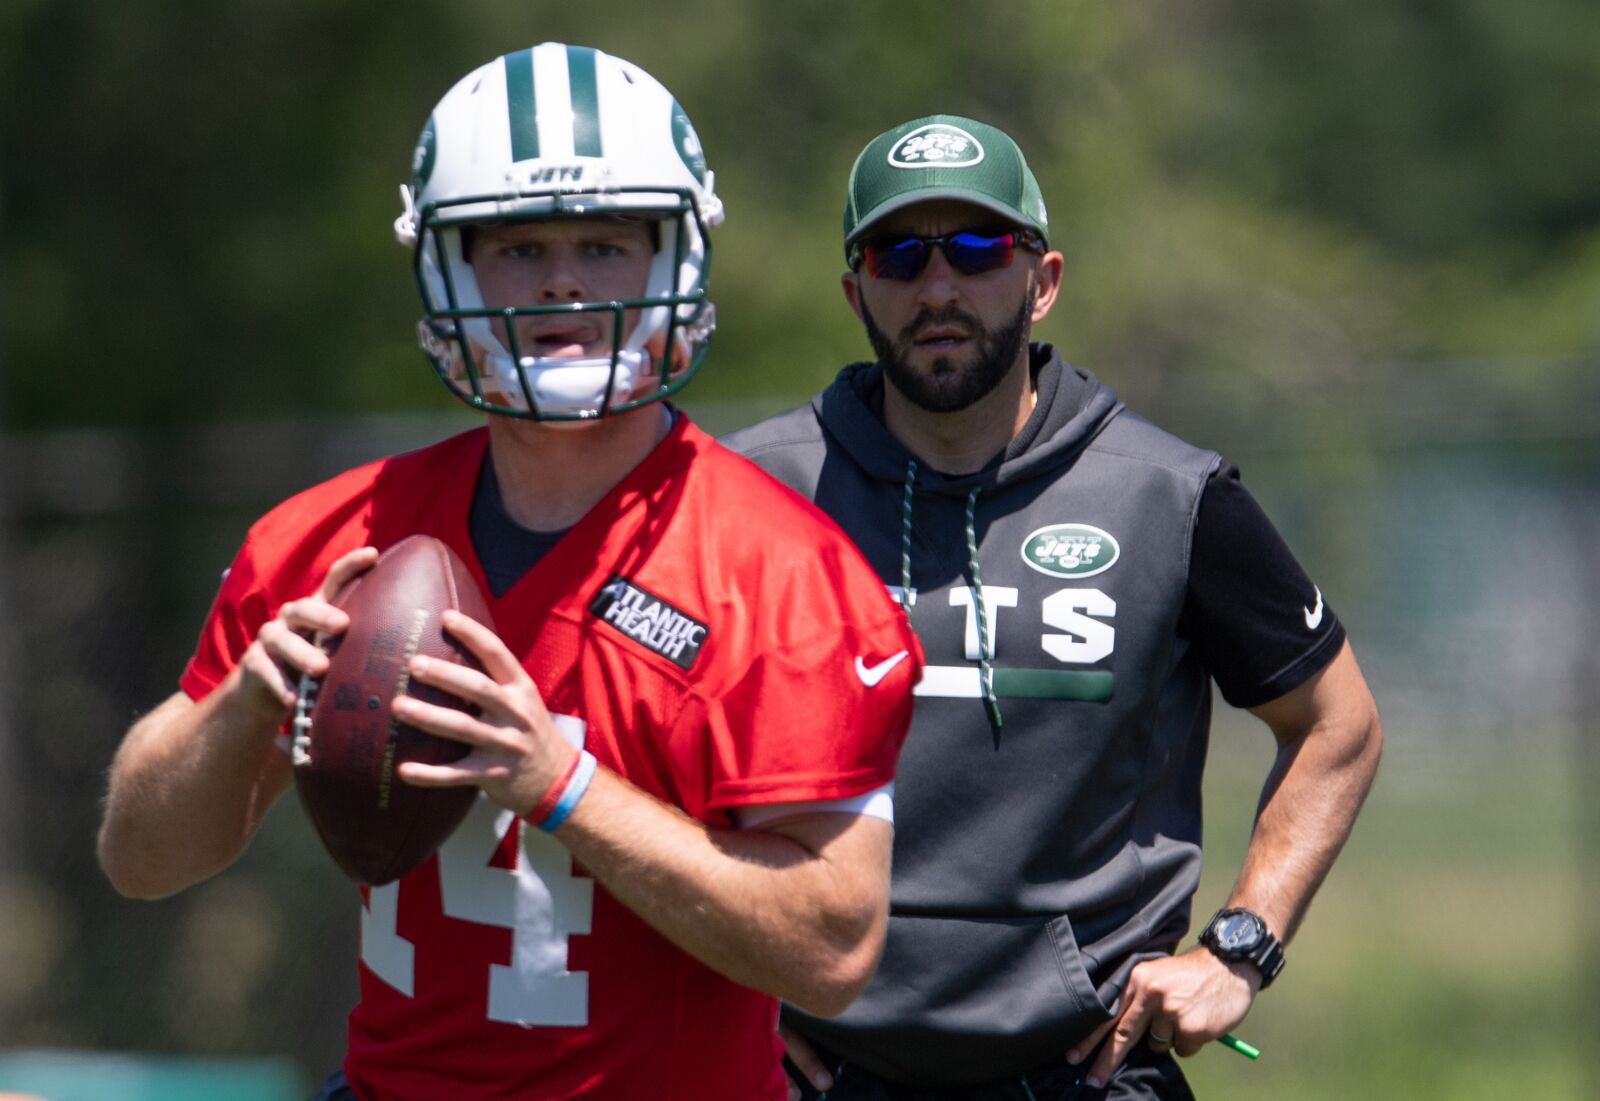 FLORHAM PARK, NJ - JUNE 12: Quarterback Sam Darnold #14 of the New York Jets in passing drills during mandatory mini camp on June 12, 2018 at The Atlantic Health Jets Training Center in Florham Park, New Jersey. (Photo by Mark Brown/Getty Images)